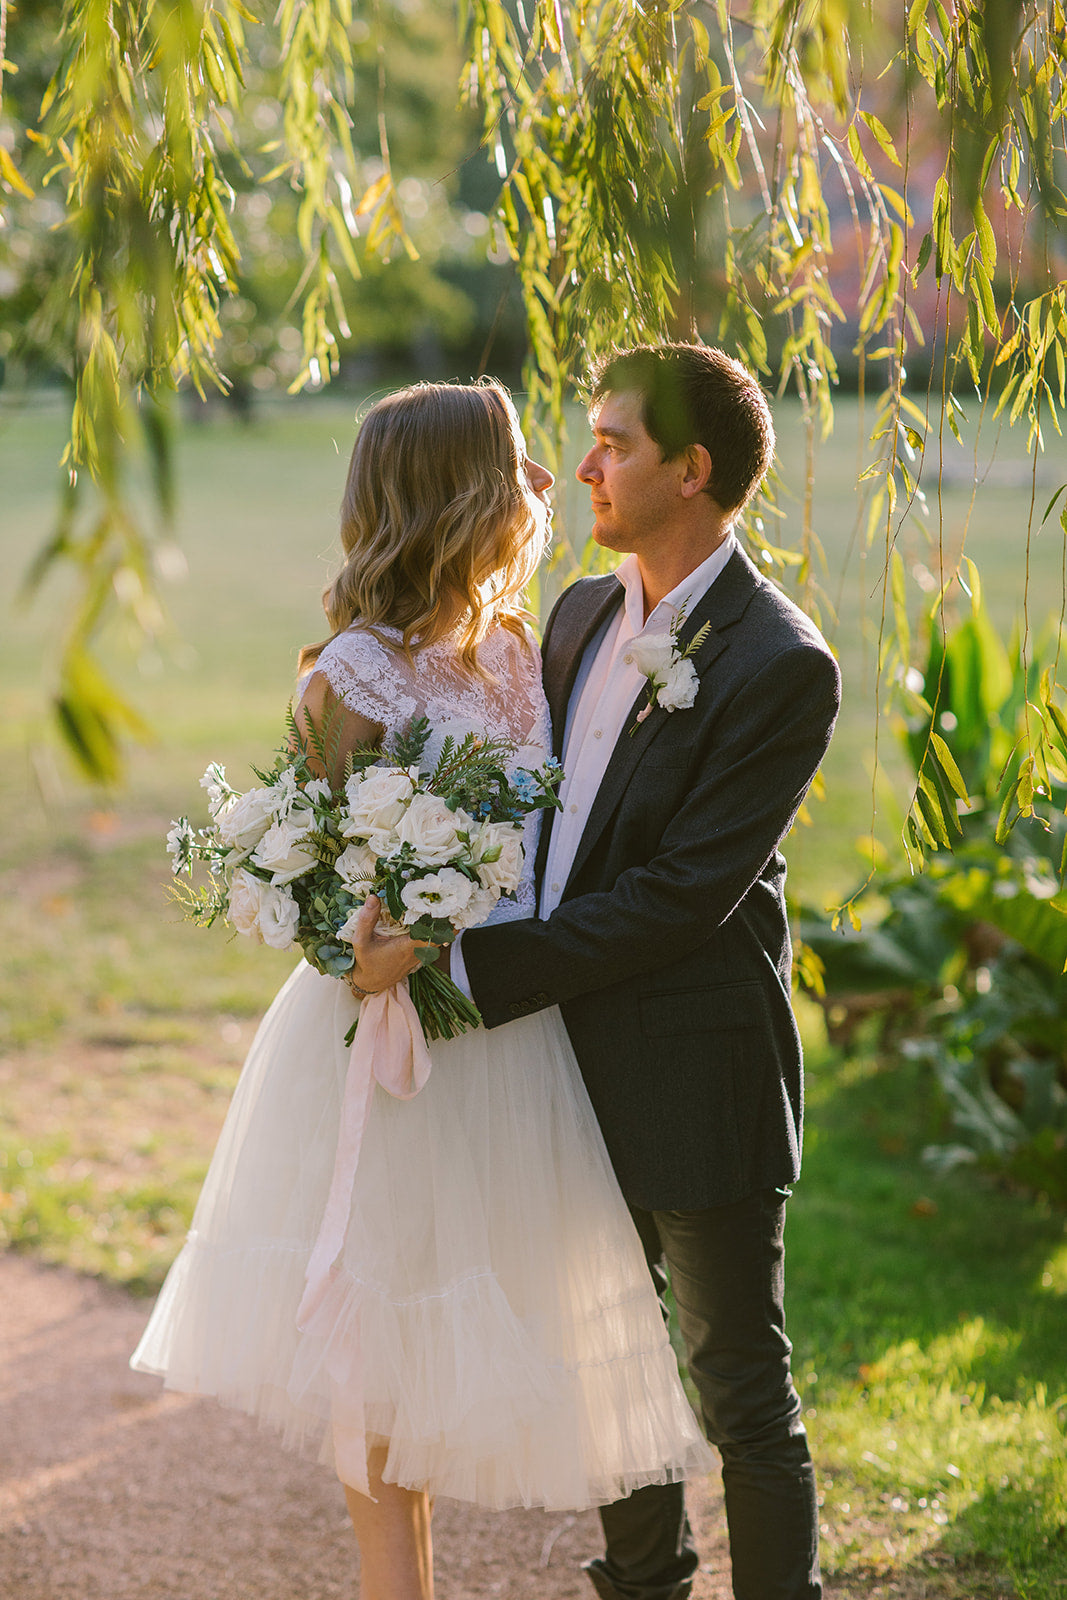 Tips for affordable wedding flowers in Sydney and Bowral